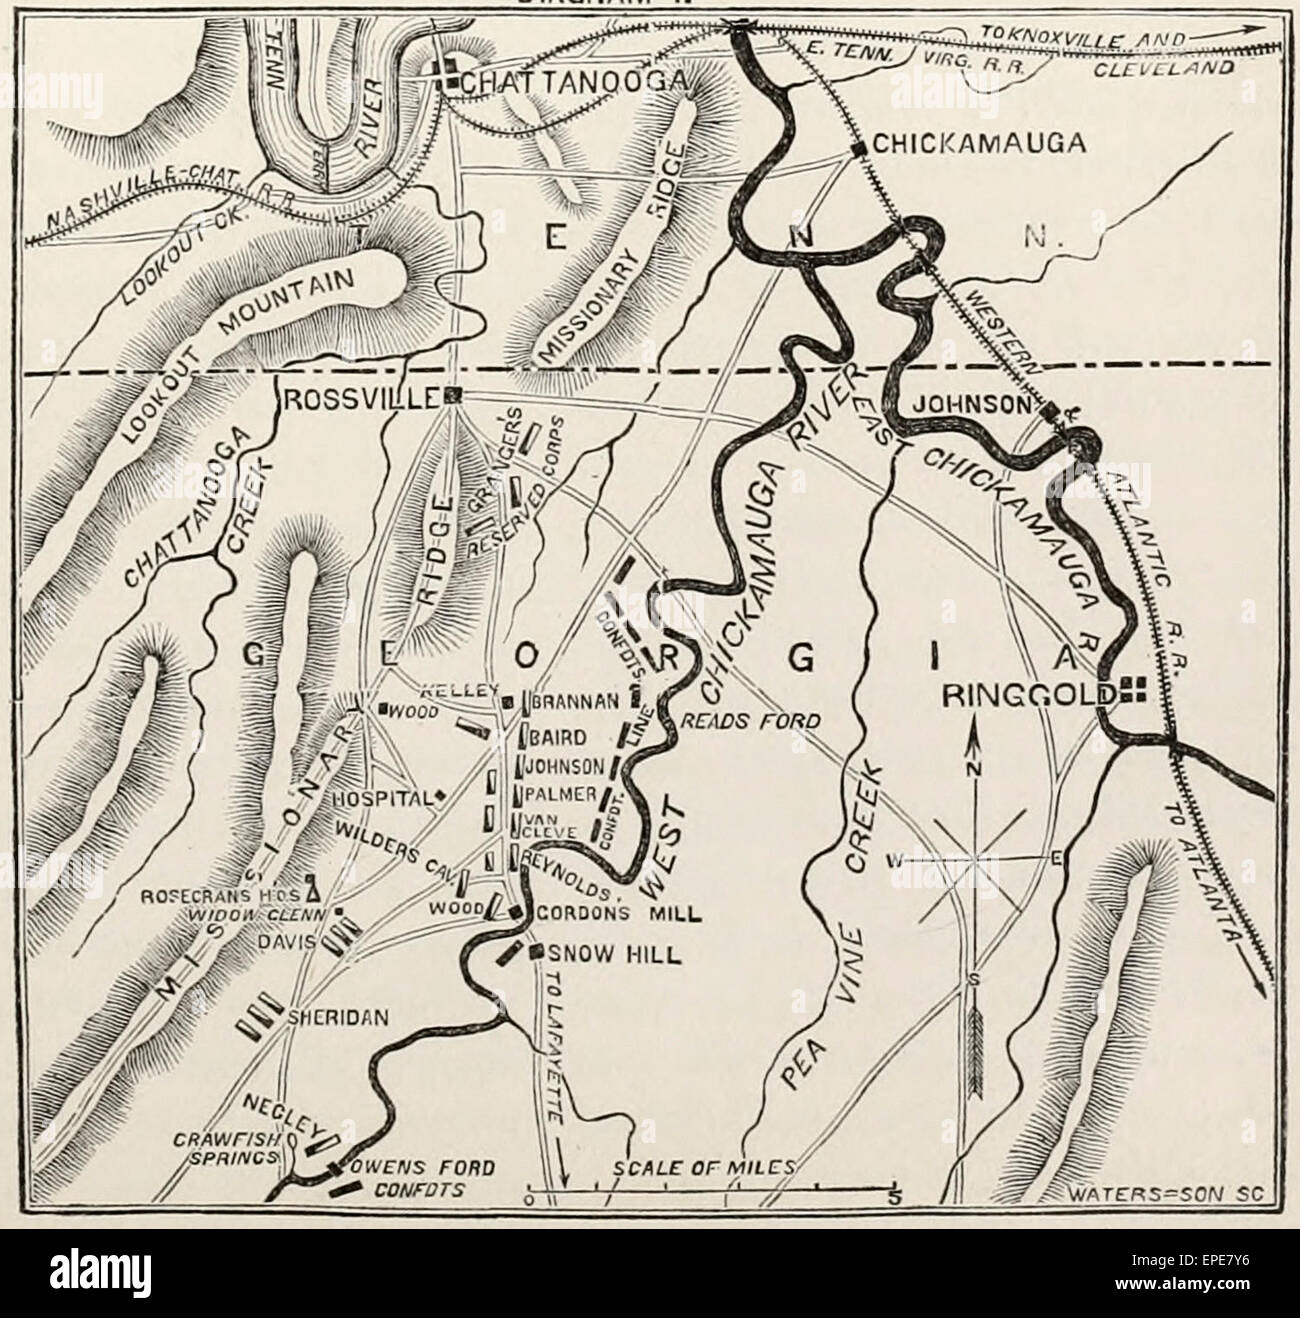 Diagram showing the positions of the Armies at the Battle of Chickamauga - USA Civil War 1863 - Stock Image